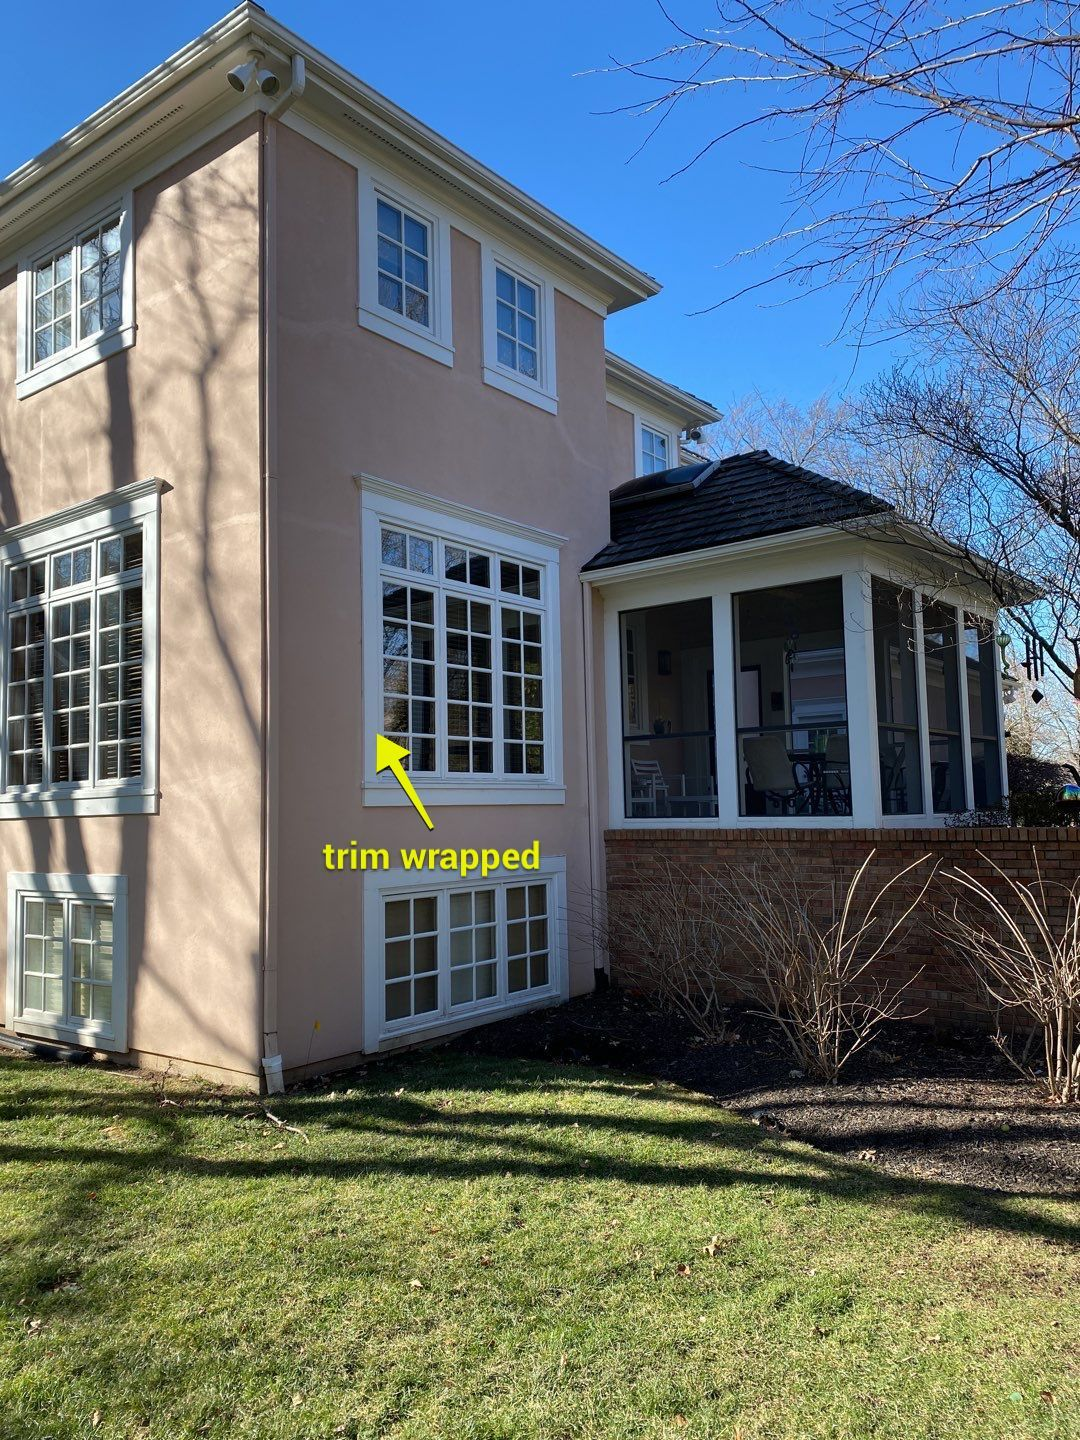 wrapped trim - How Much Will It Cost to Paint my Exterior - Overland Park, Lee's Summit, Kansas City Painting